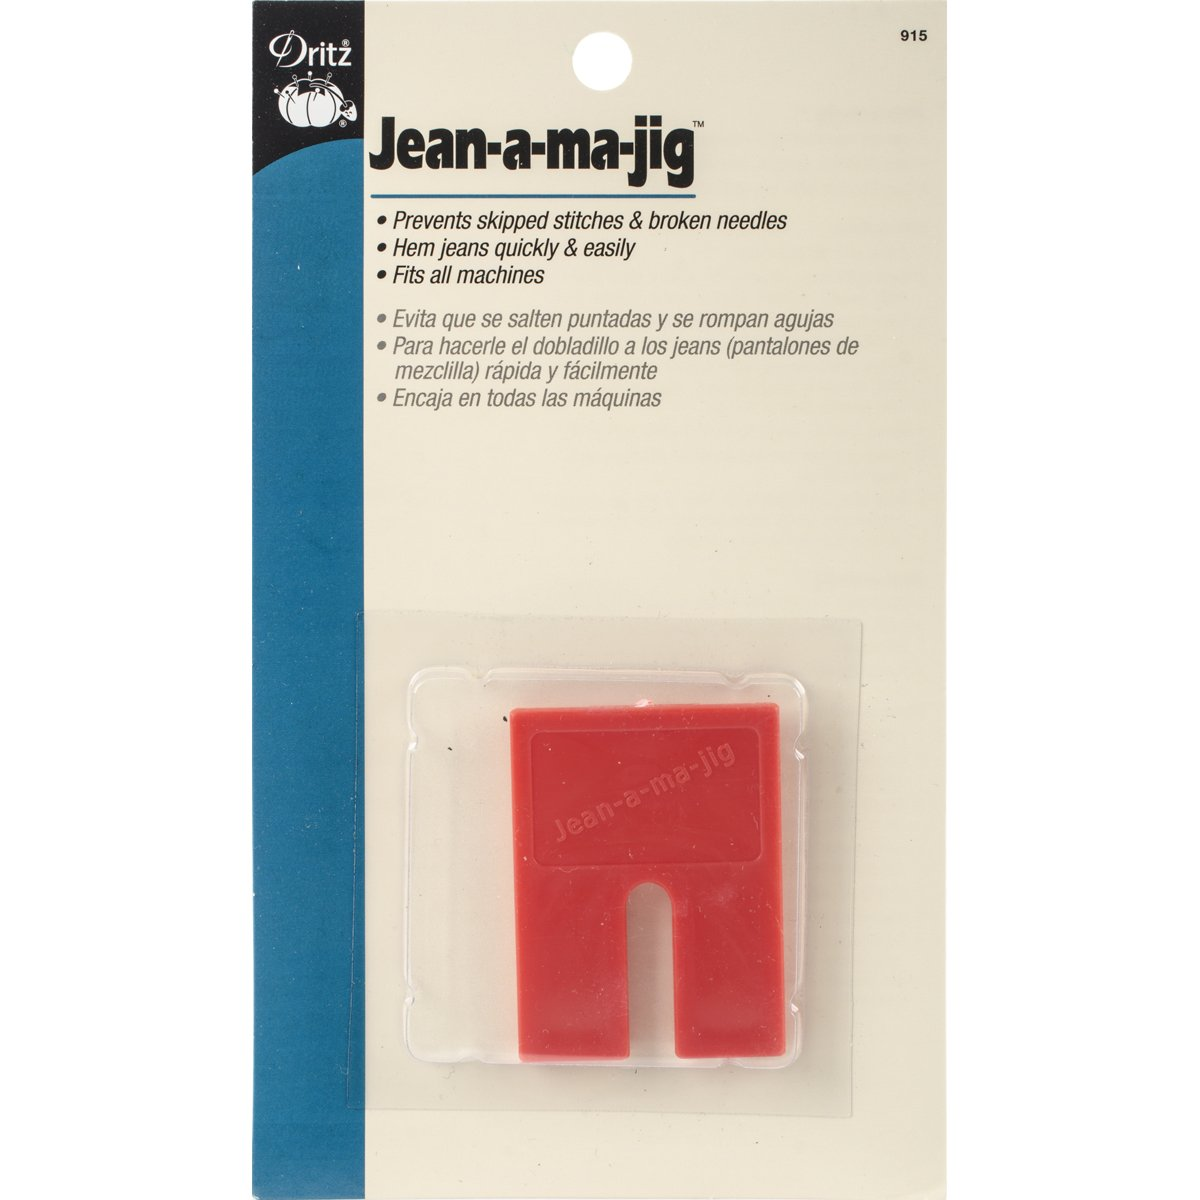 Dritz Jean, a, Majig for Sewing Product Jason Hayes Prym Consumer USA 915